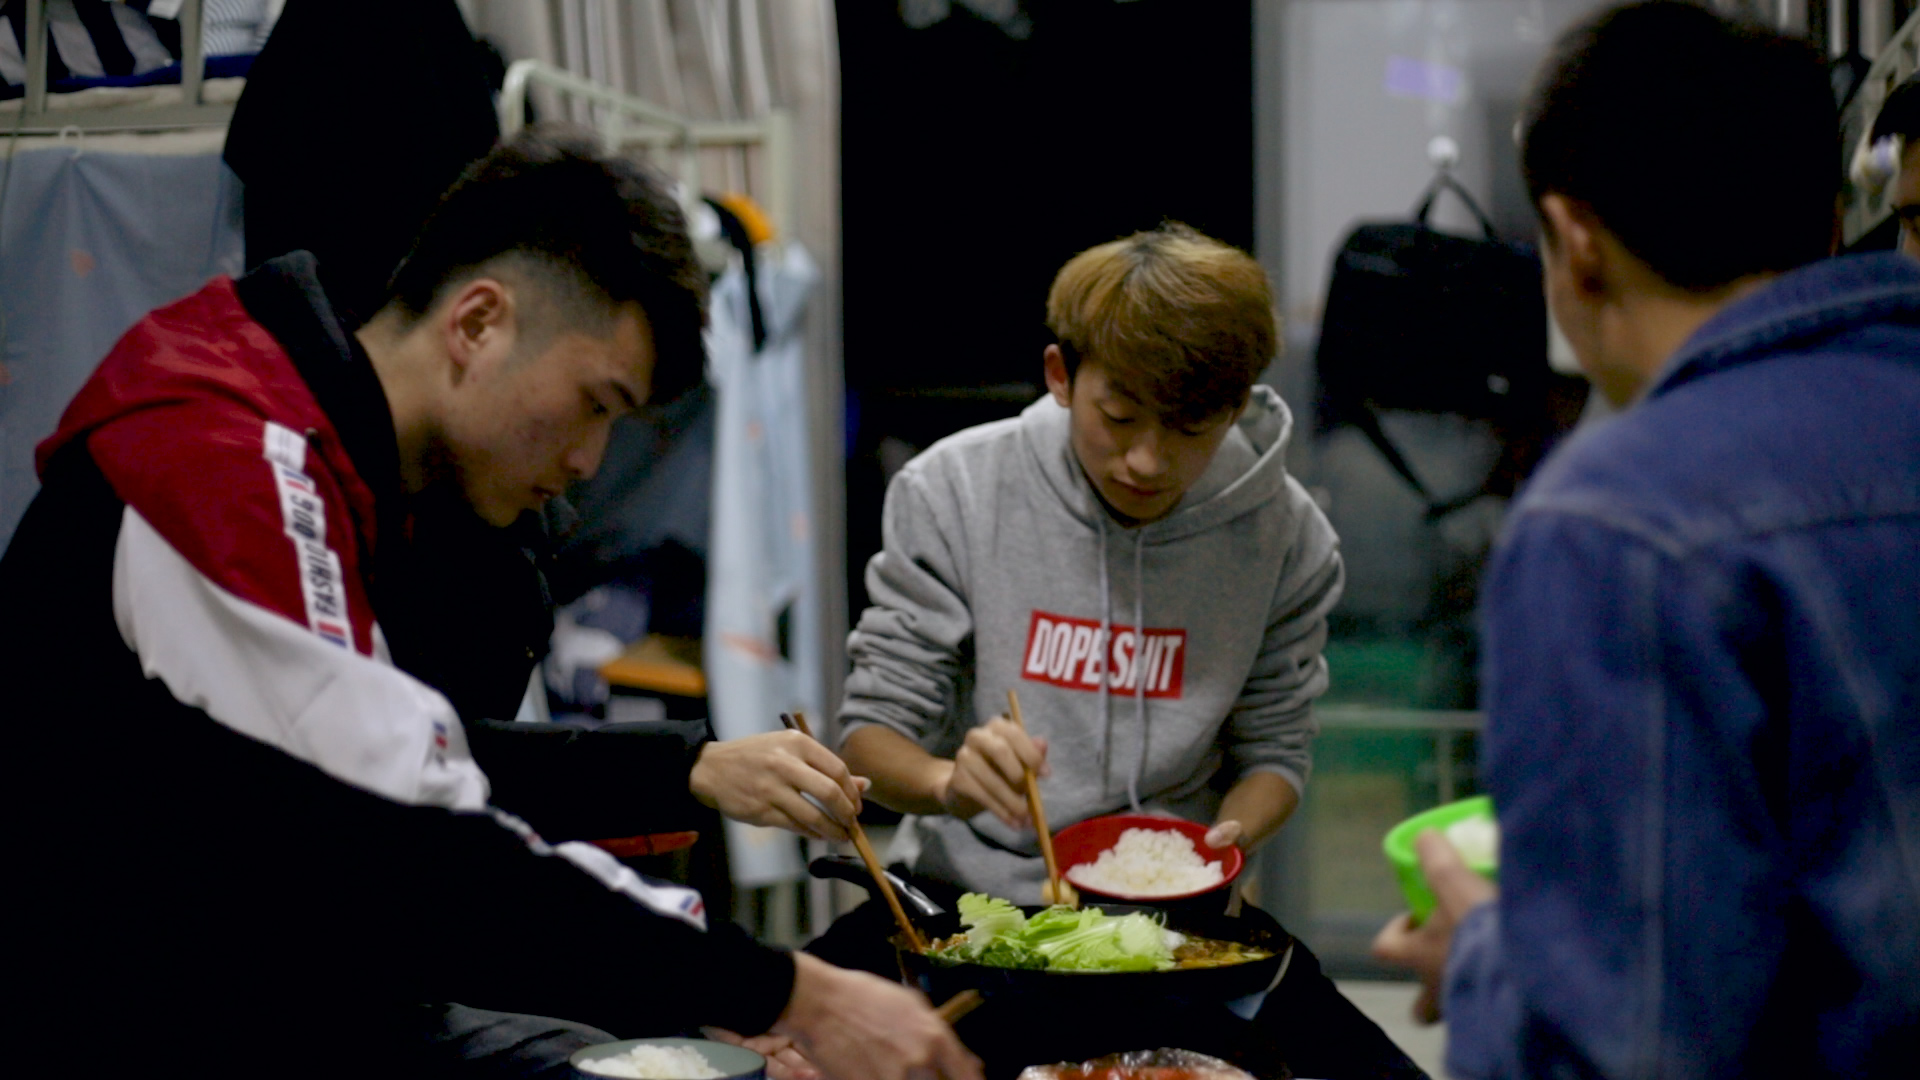 Yin You (C), 20, a tagger at an AI farm, has dinner with colleagues in the company dorm at Bainiaohe Digital Town in Guizhou, China, on Dec. 4, 2018